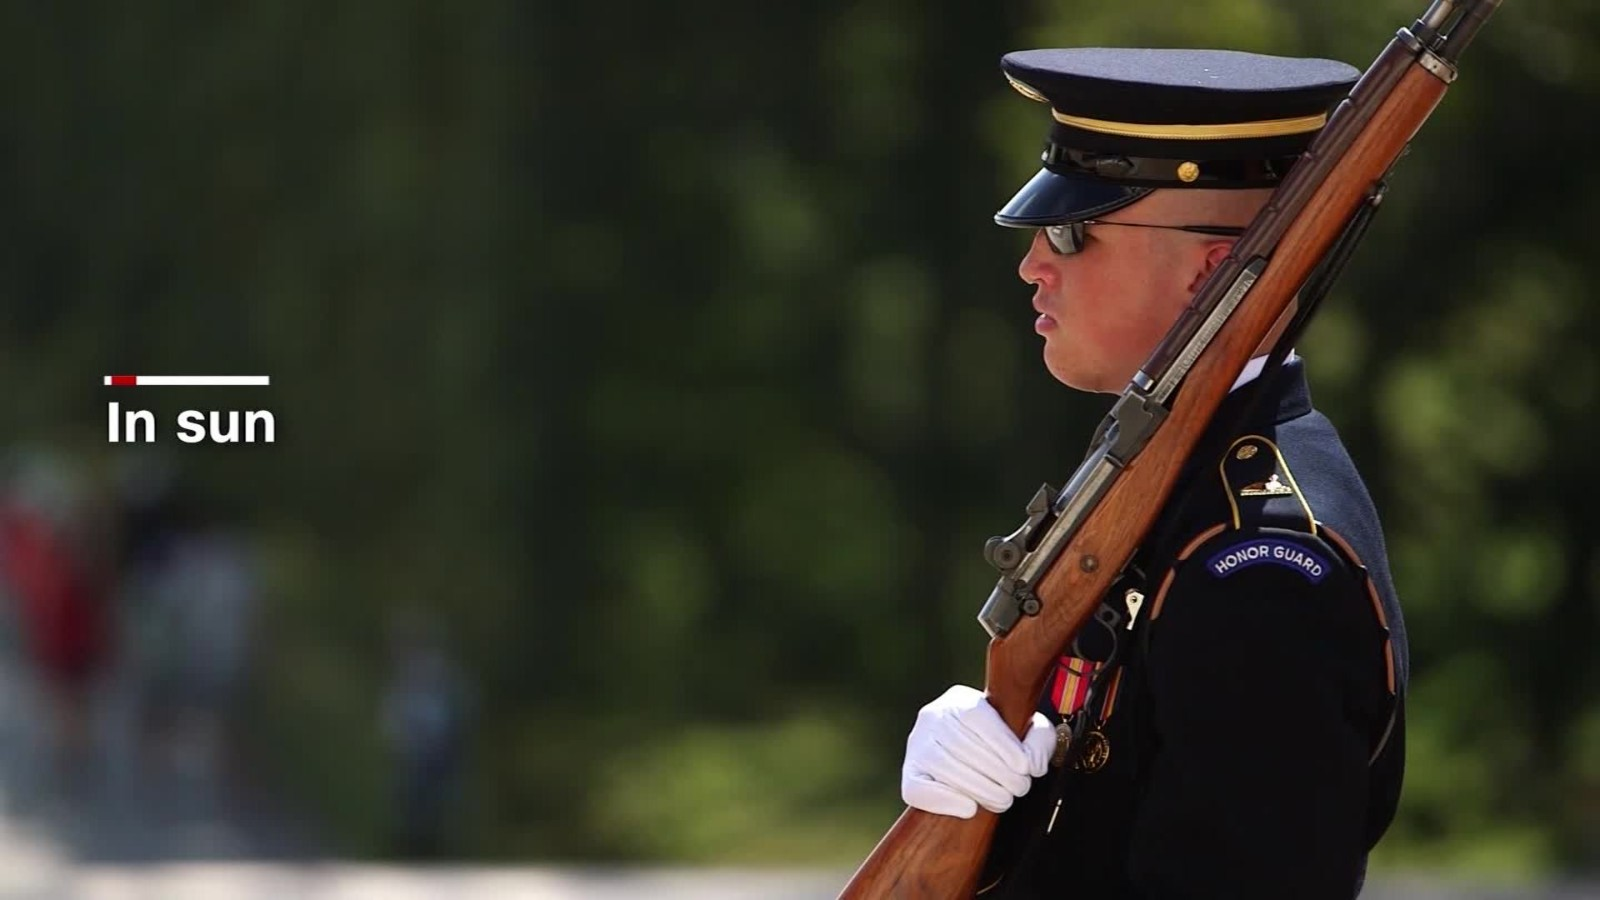 Soldier braves elements to honor fallen comrades - CNN